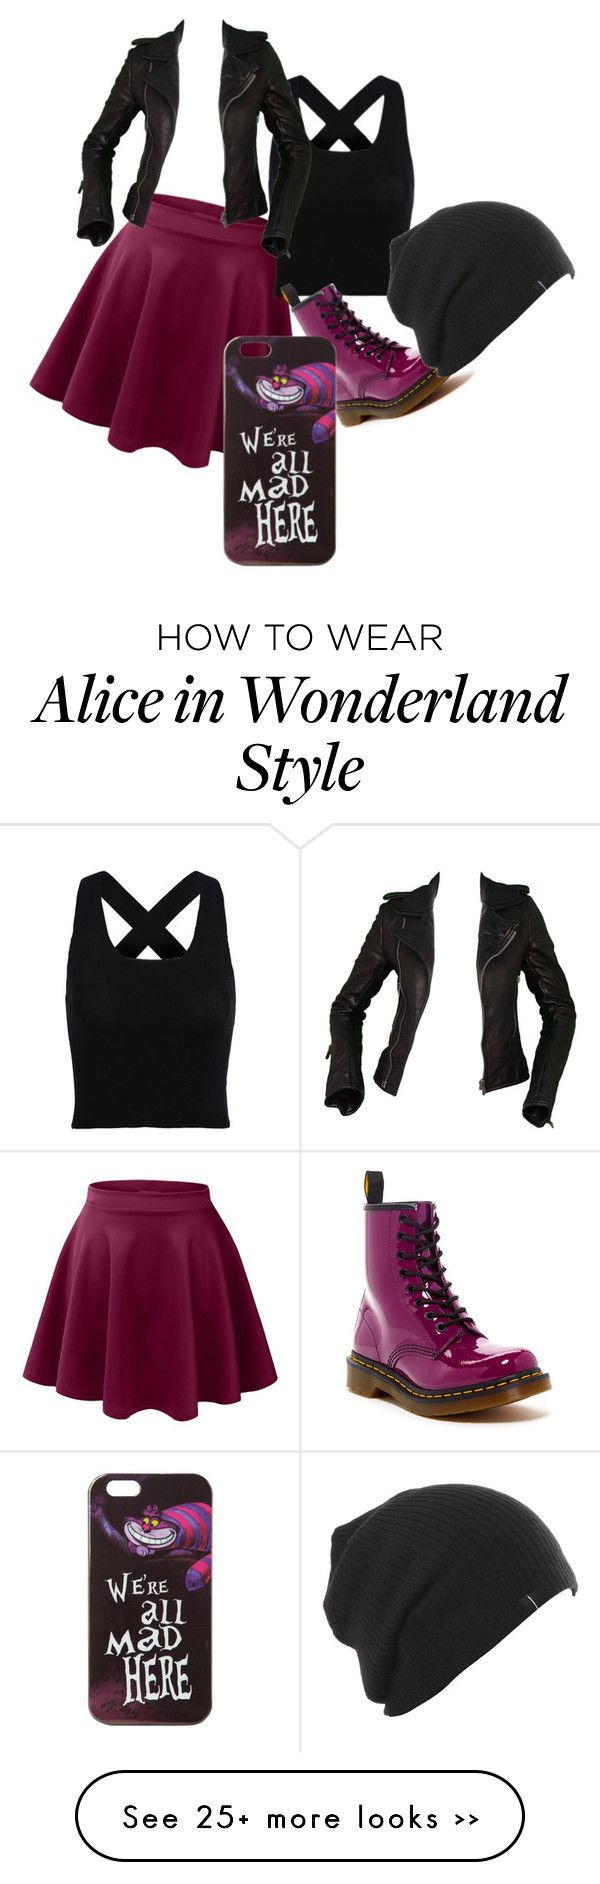 """Untitled #270"" by pinkart2000 on Polyvore"